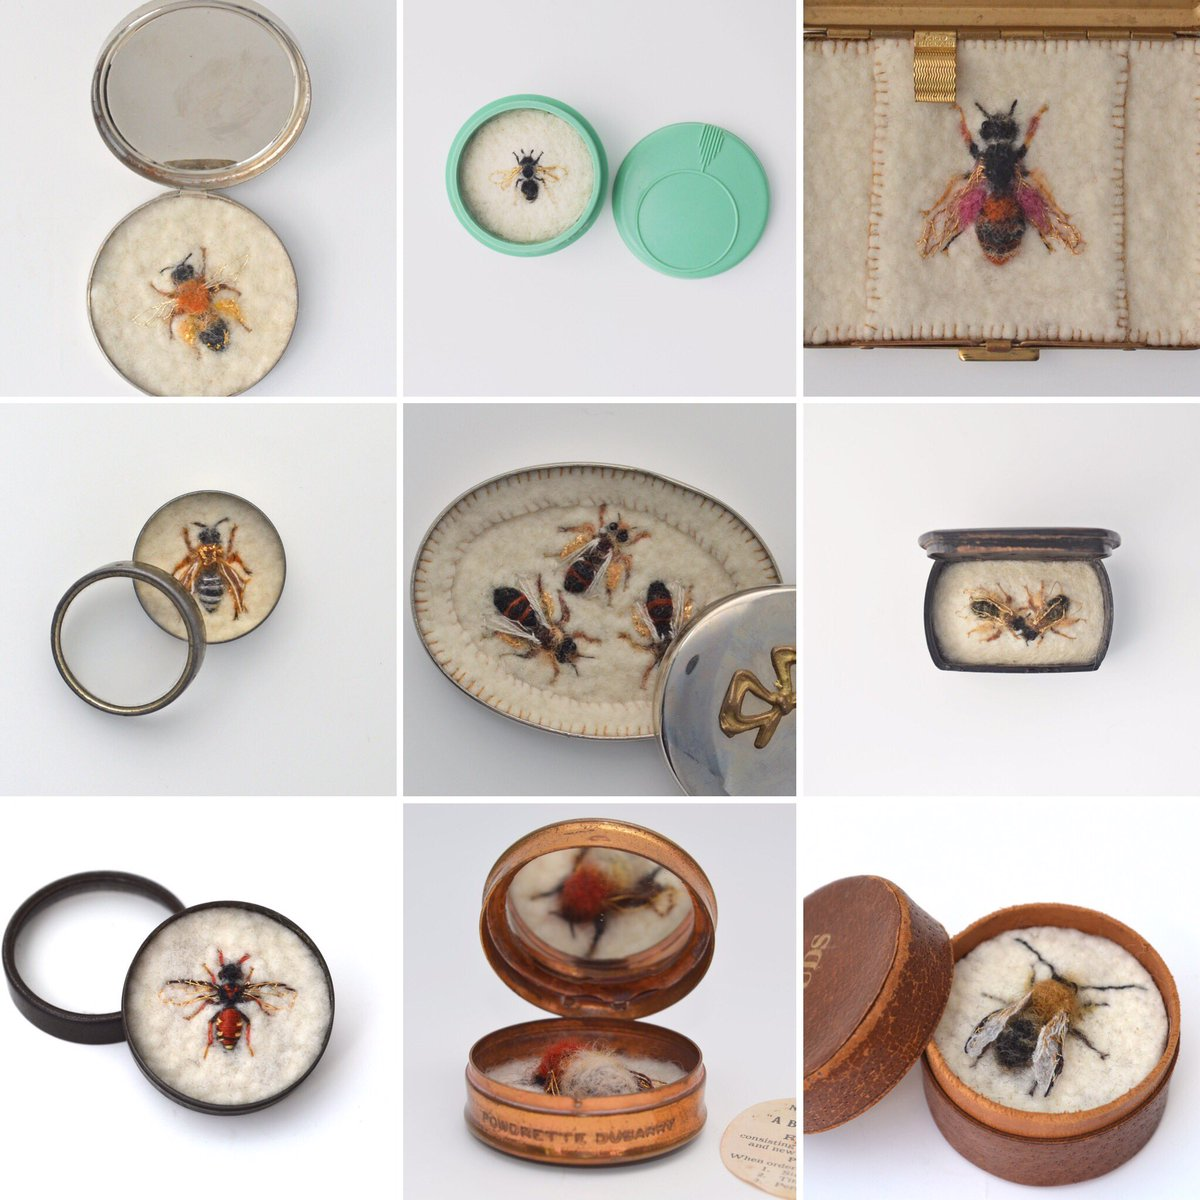 LAST 2 DAYS to see #fiftybees and their 50 companion pieces: 50 #art #music &amp; #poetry responses to #bee diversity &amp; #ecology DON&#39;T MISS IT!! <br>http://pic.twitter.com/g2PozvrOeg